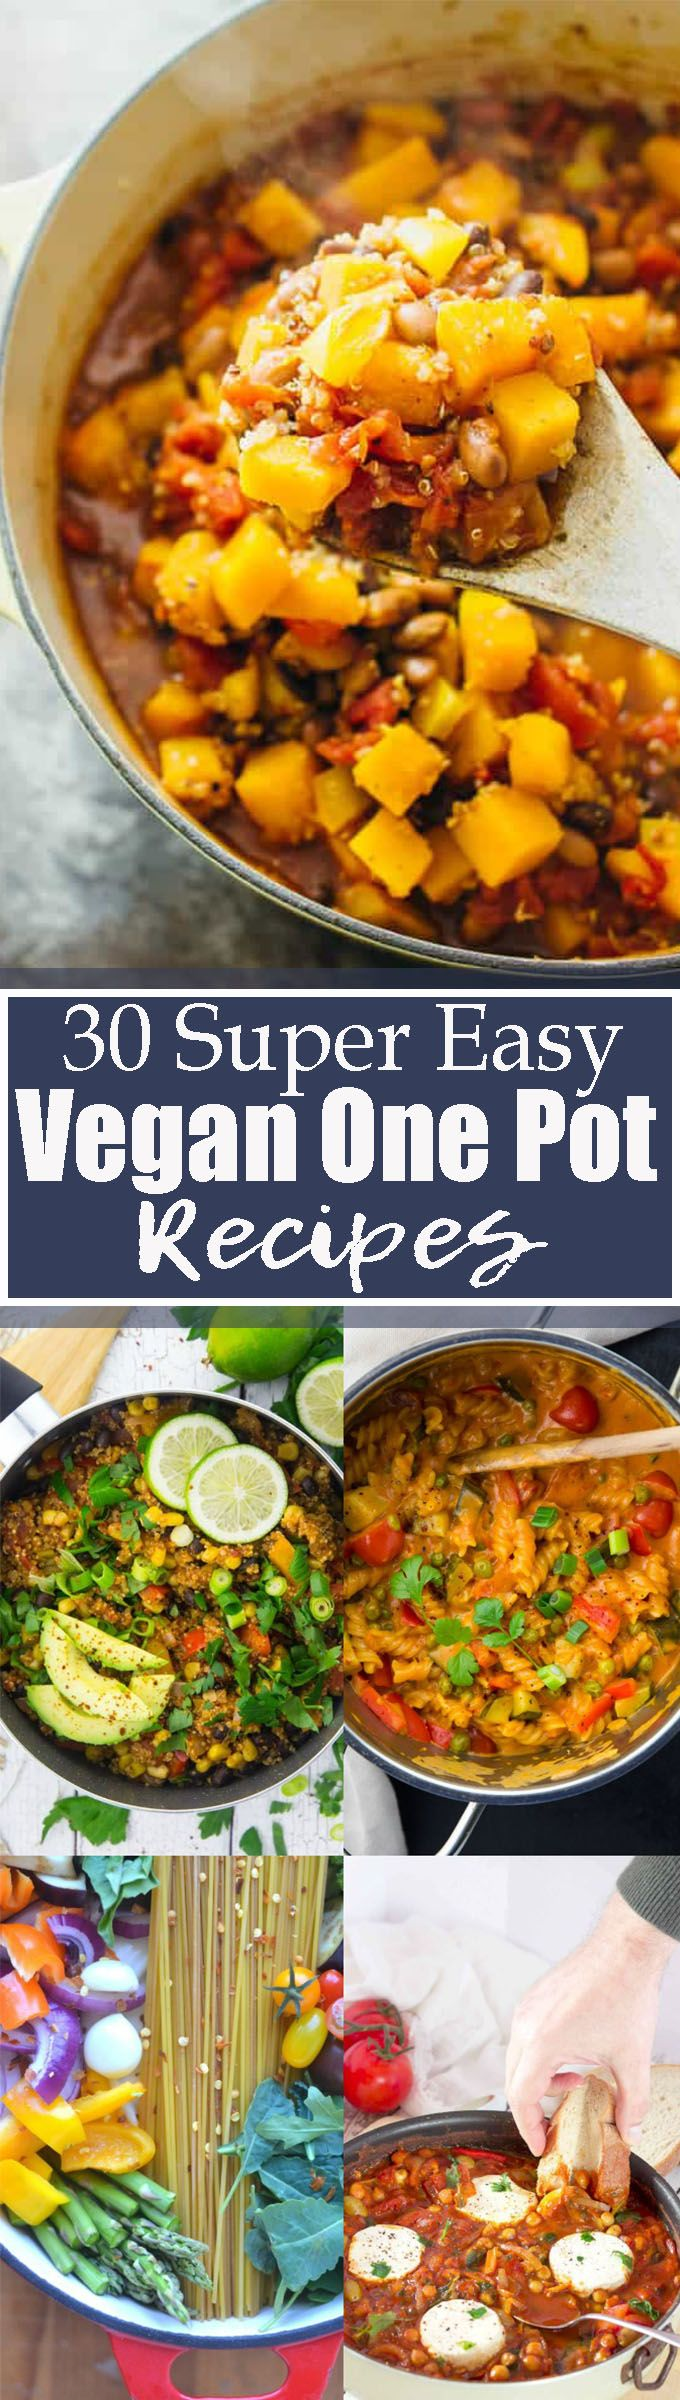 These 30 easy vegan one pot meals are perfect for busy days! All one pot recipes are super easy, healthy, and so delicious! Vegetarian recipes definitely don't have to be complicated! Find more vegan recipes at veganheaven.org <3